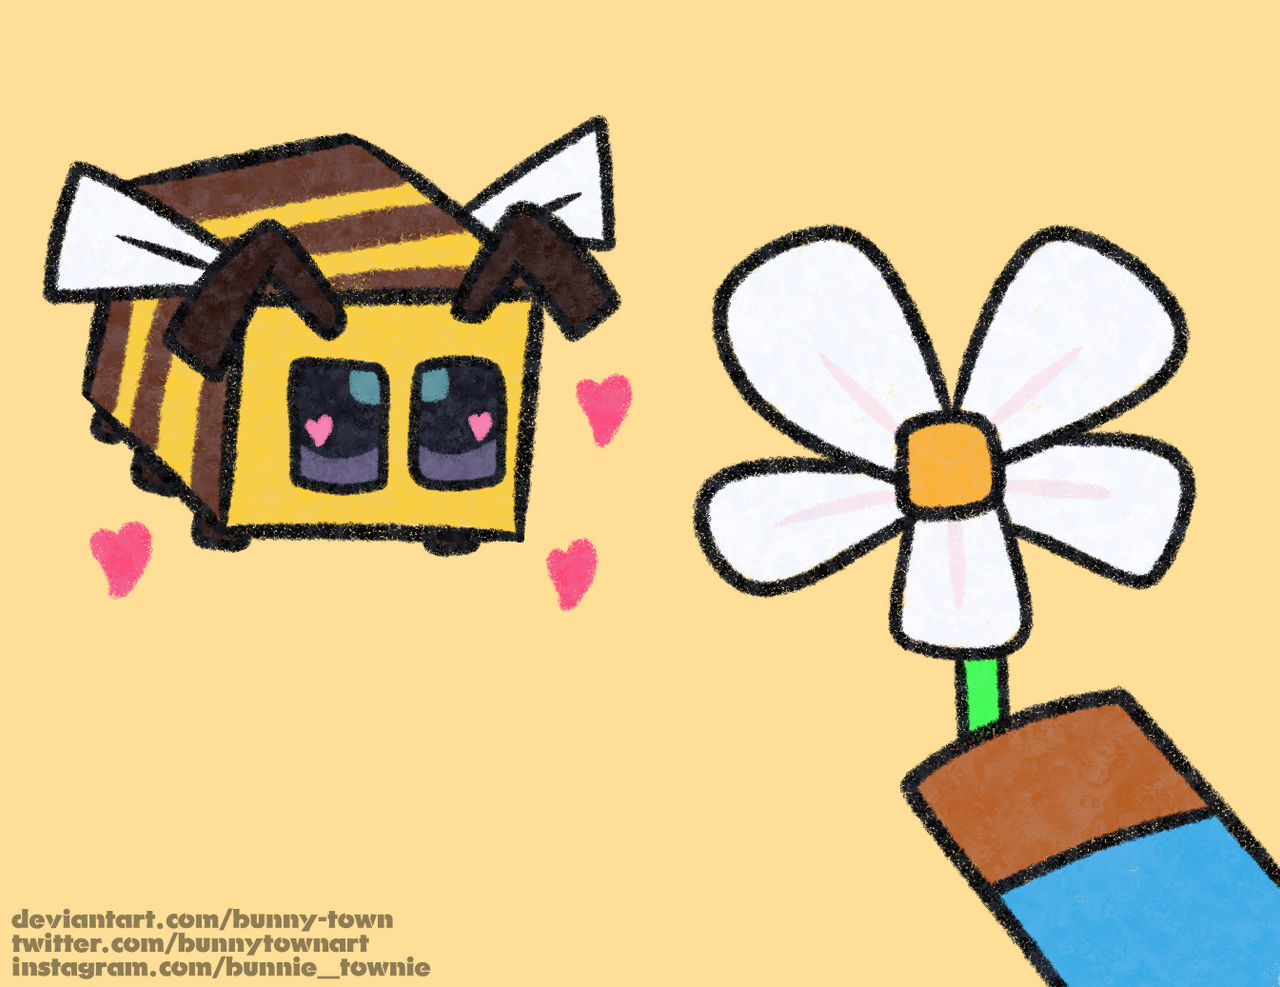 imma bee,,, by bunny-town on DeviantArt